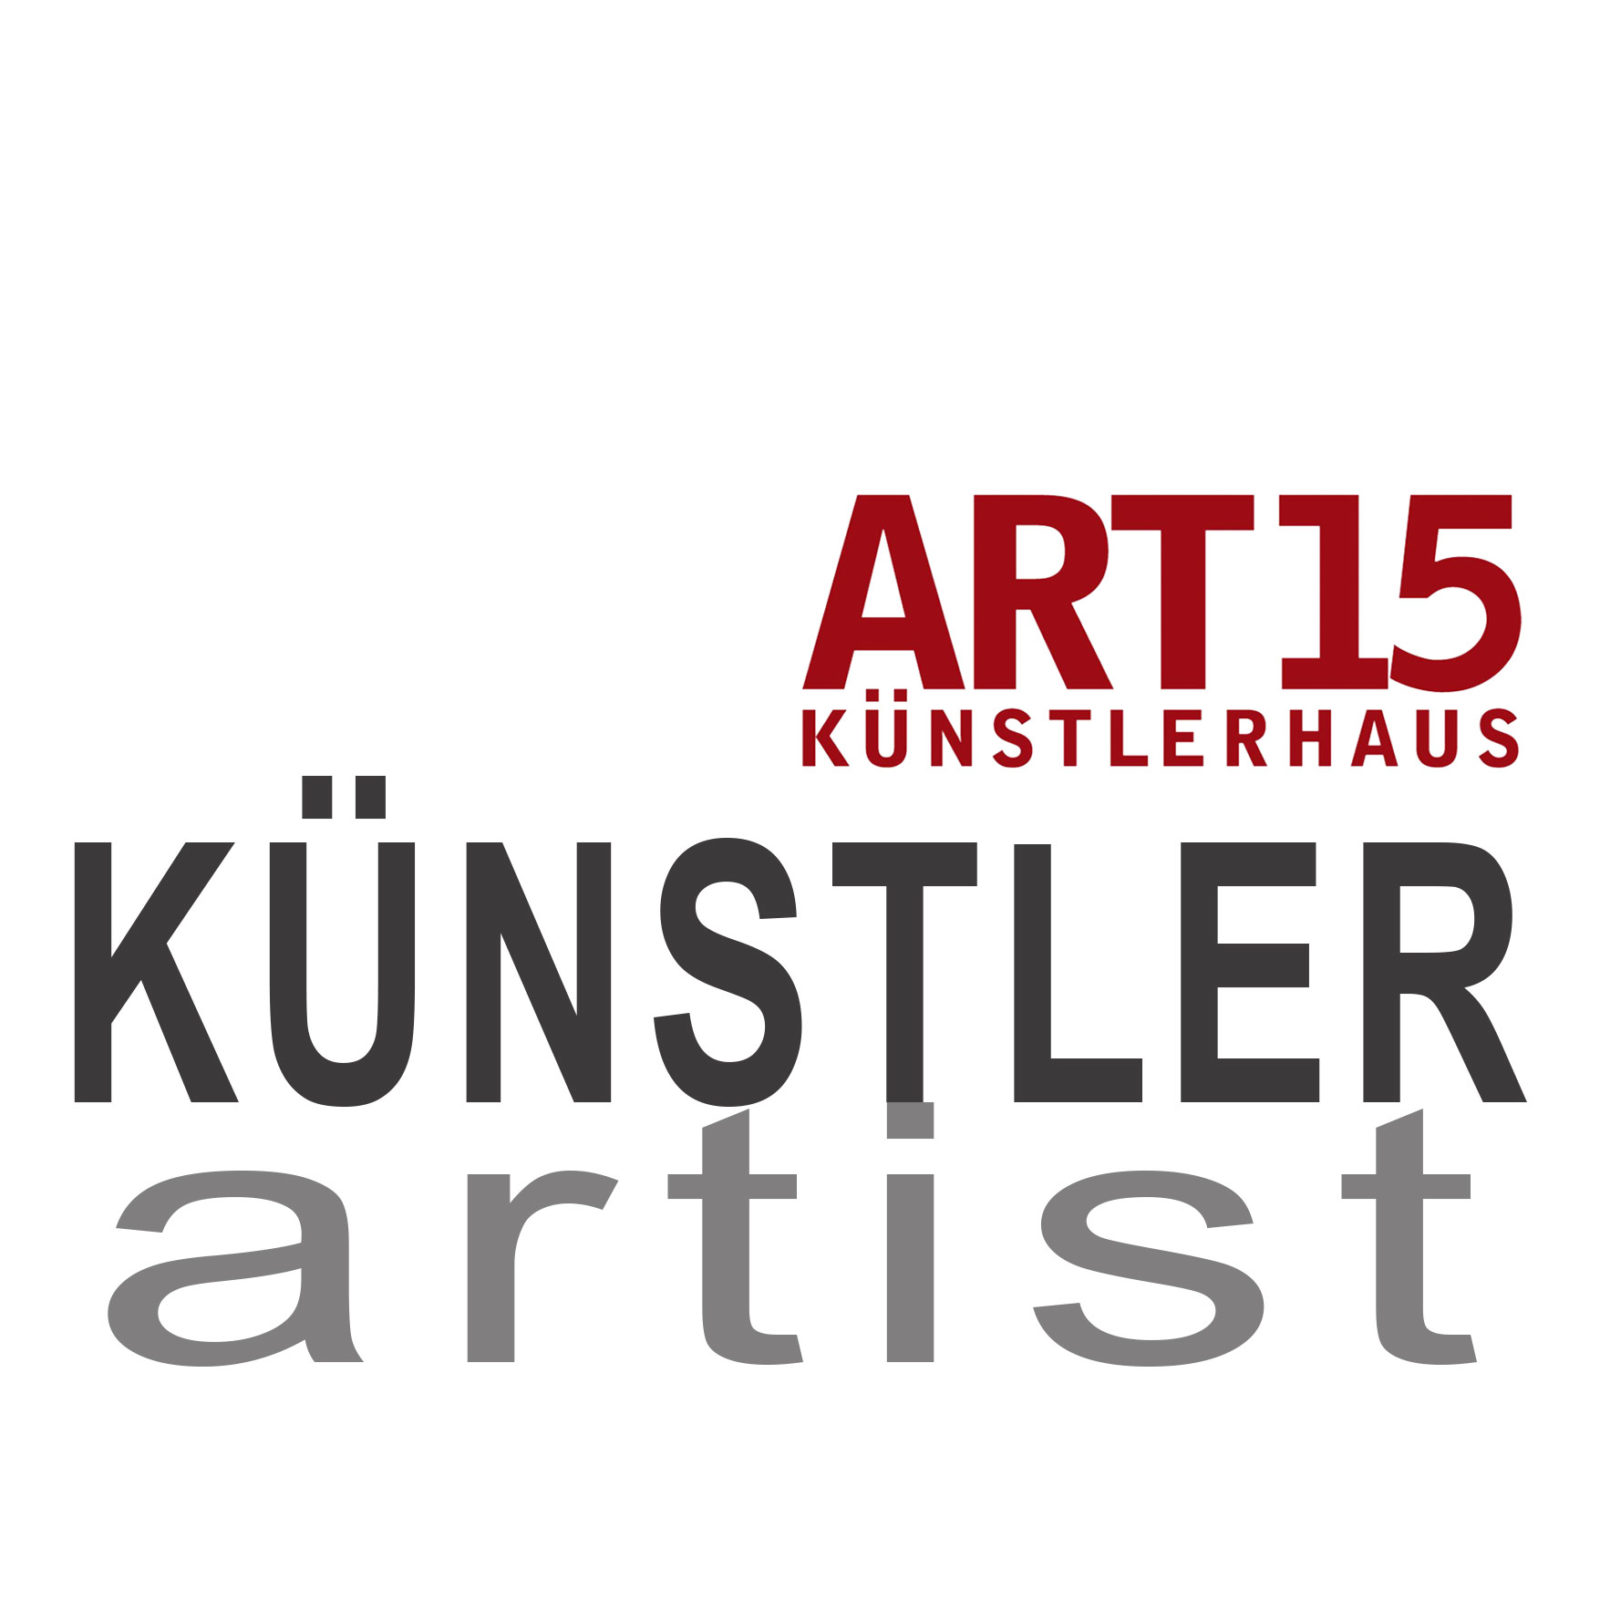 PATRIZIA CASAGRANDA - ART15 KÜNSTLERHAUS ART15 LOGO WORDS 1